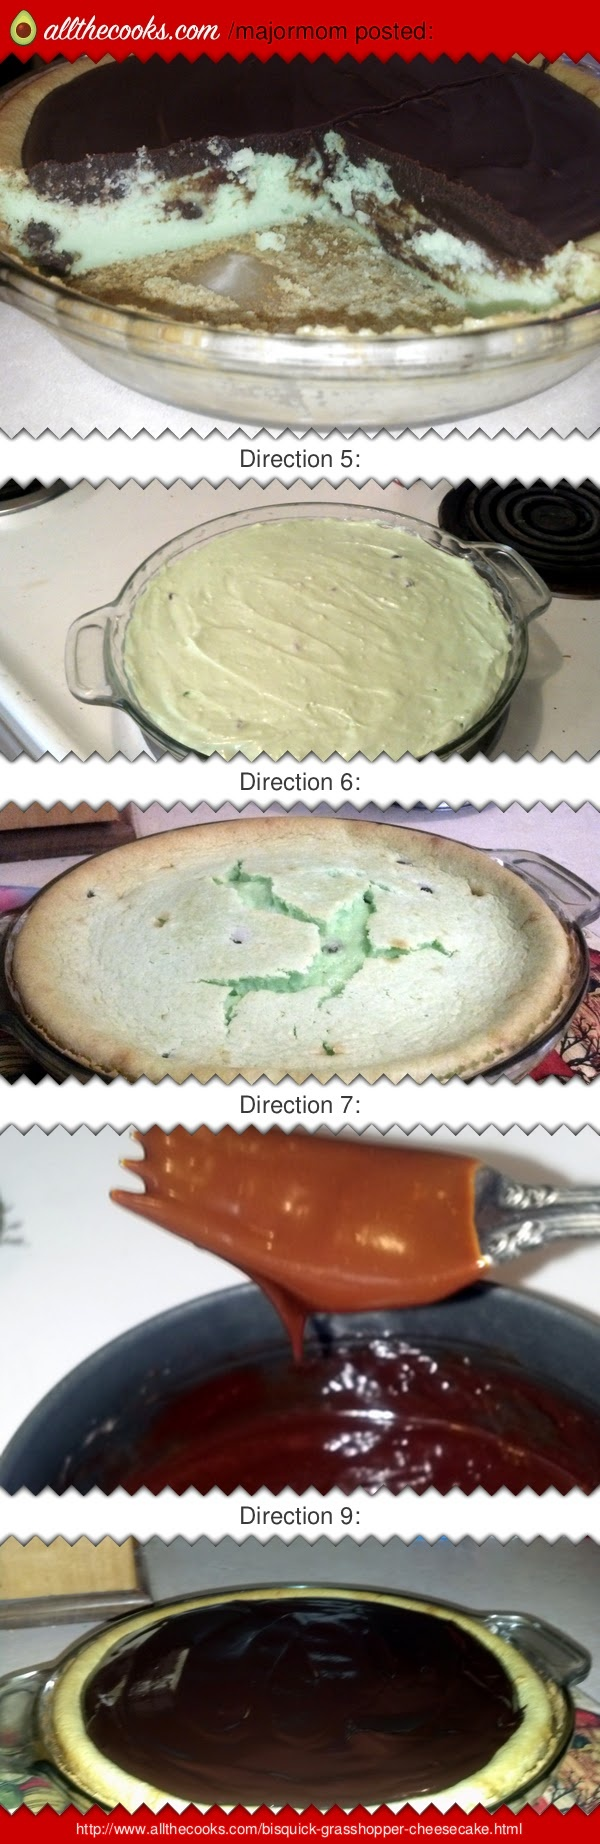 Bisquick grasshopper cheesecake! 5.00 stars, 3 reviews. Im addicted :-S I made this again :-[ @allthecooks #recipe